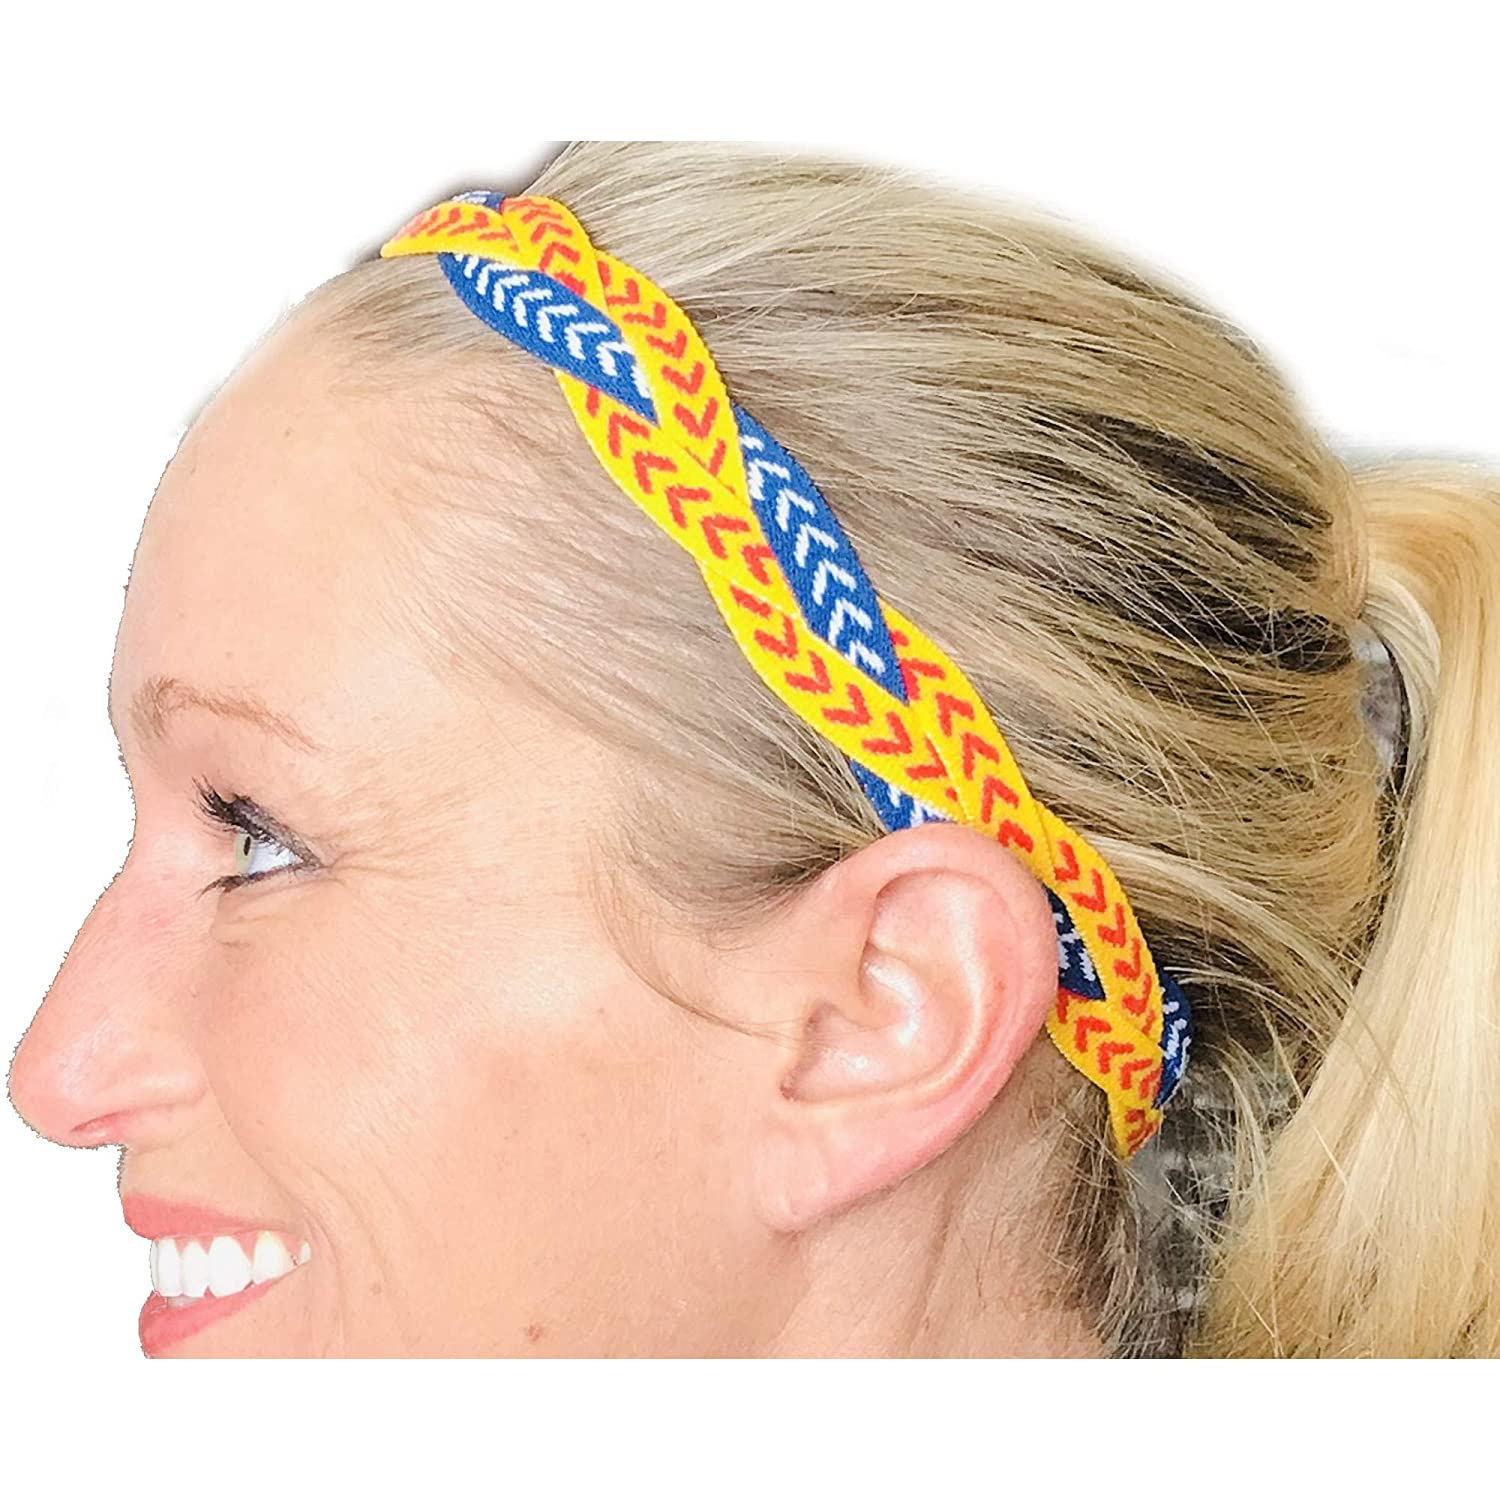 ITS RIDIC No Slip Grip//Non-Slip Sports//Athletic Nylon Triple Braided Sports Headband